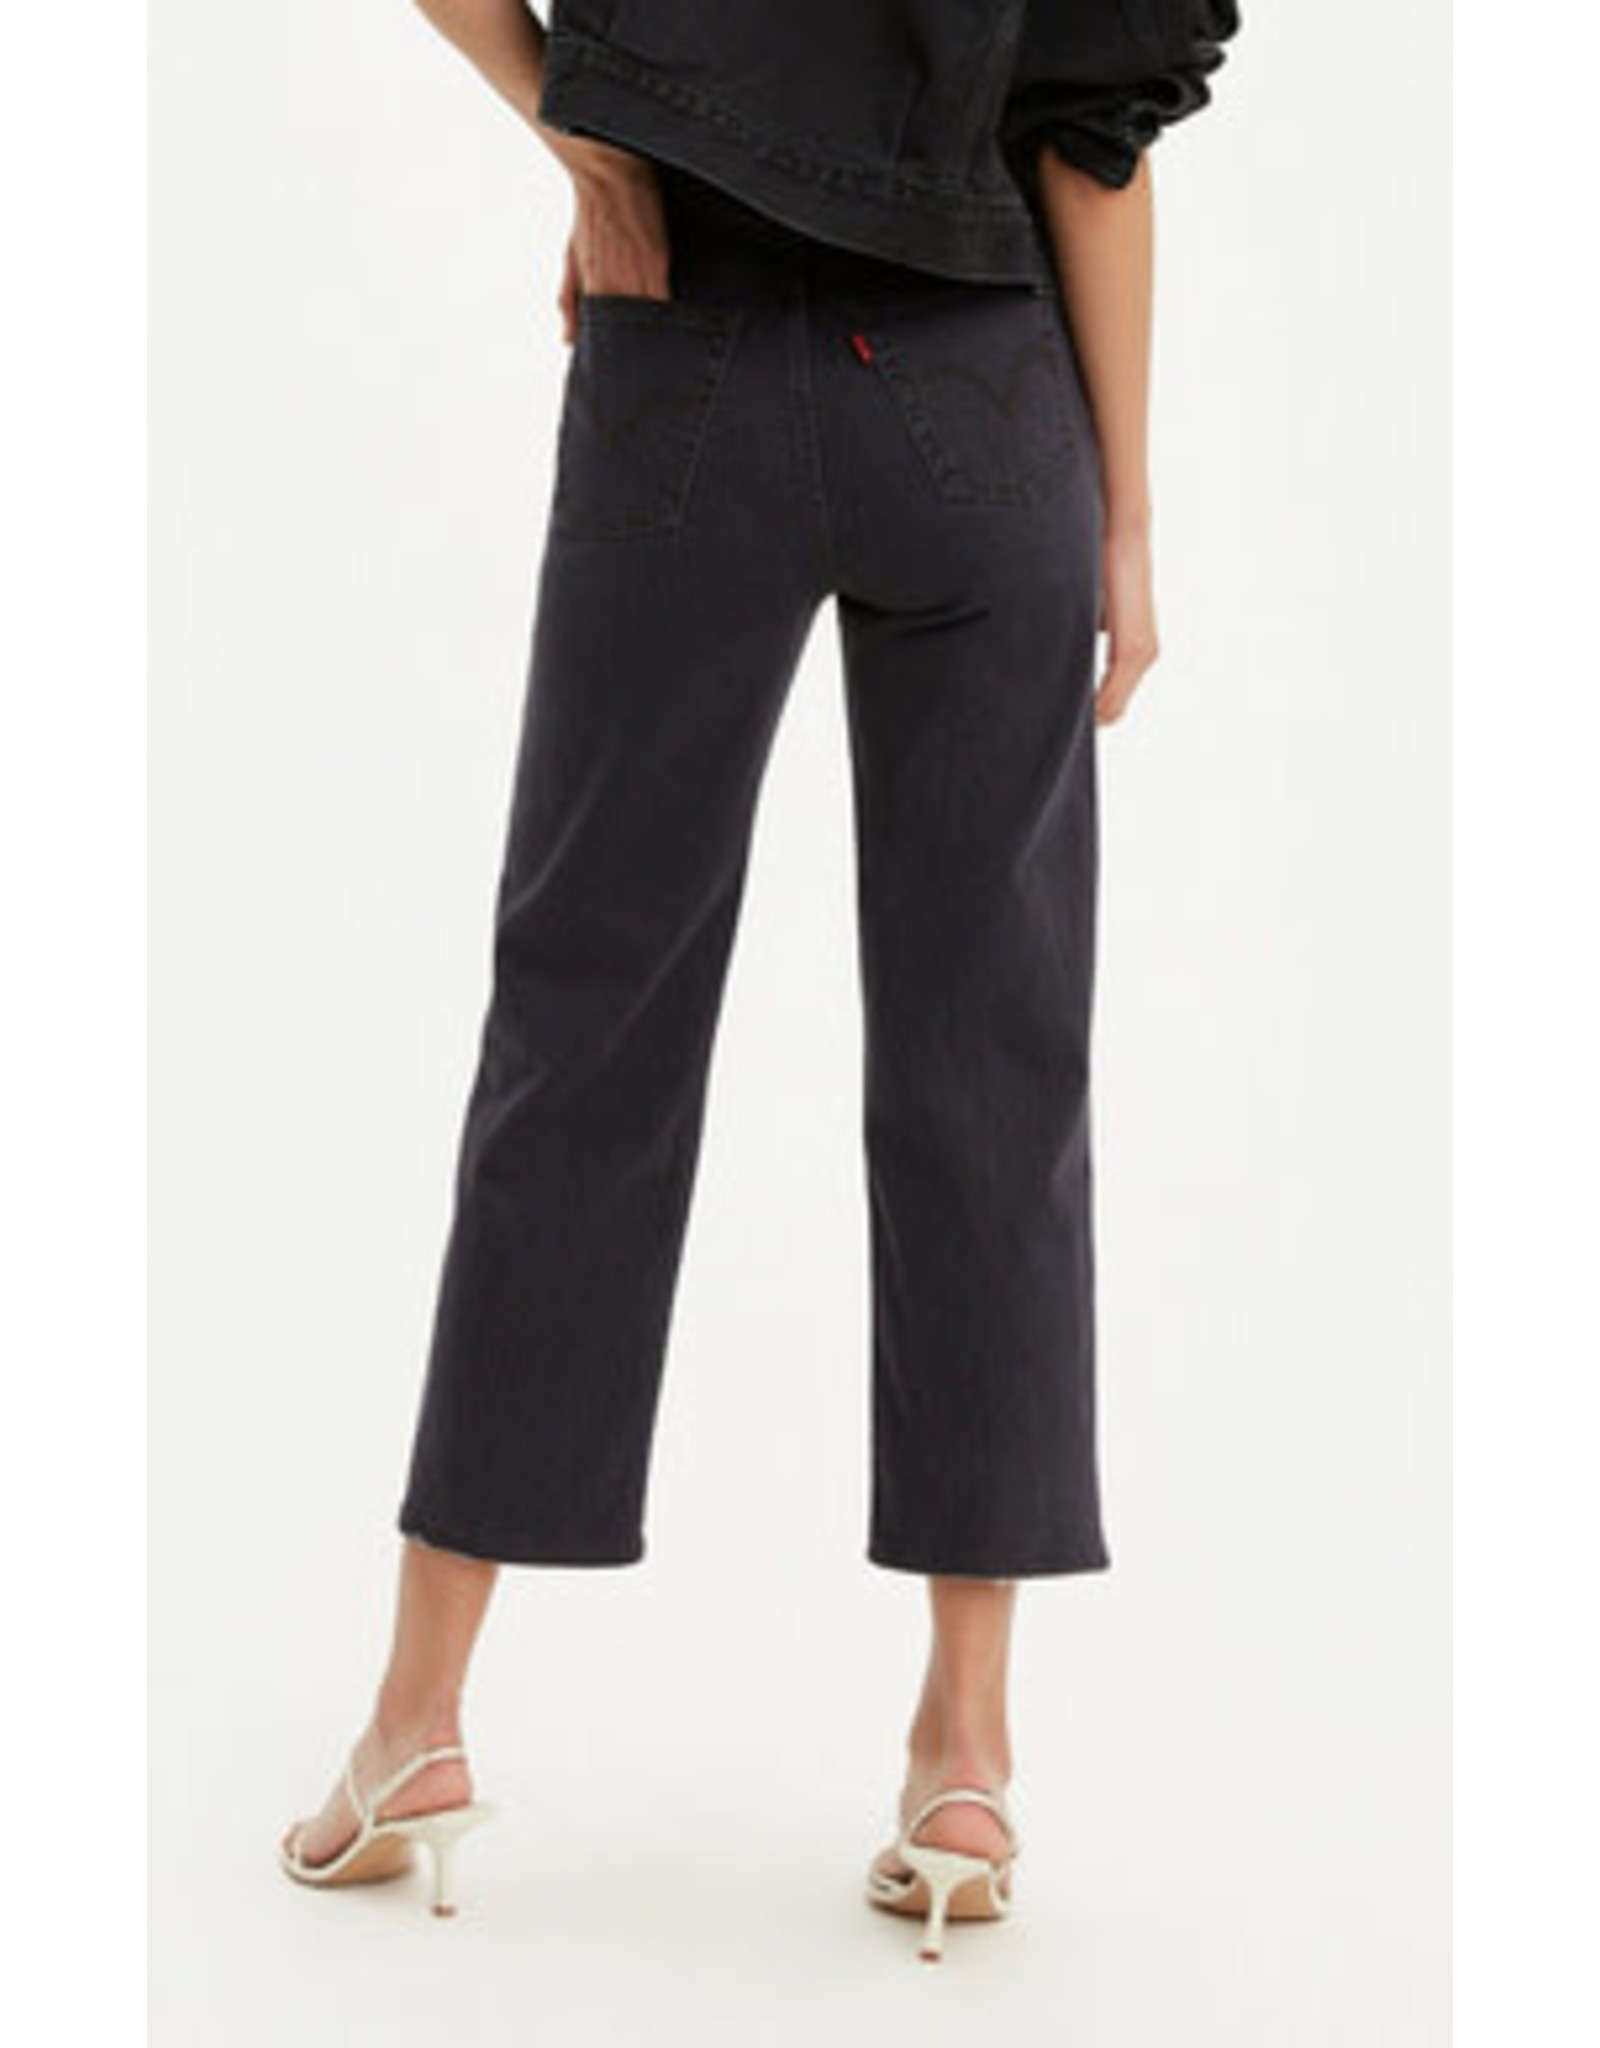 Levi's - Ribcage Straight Ankle